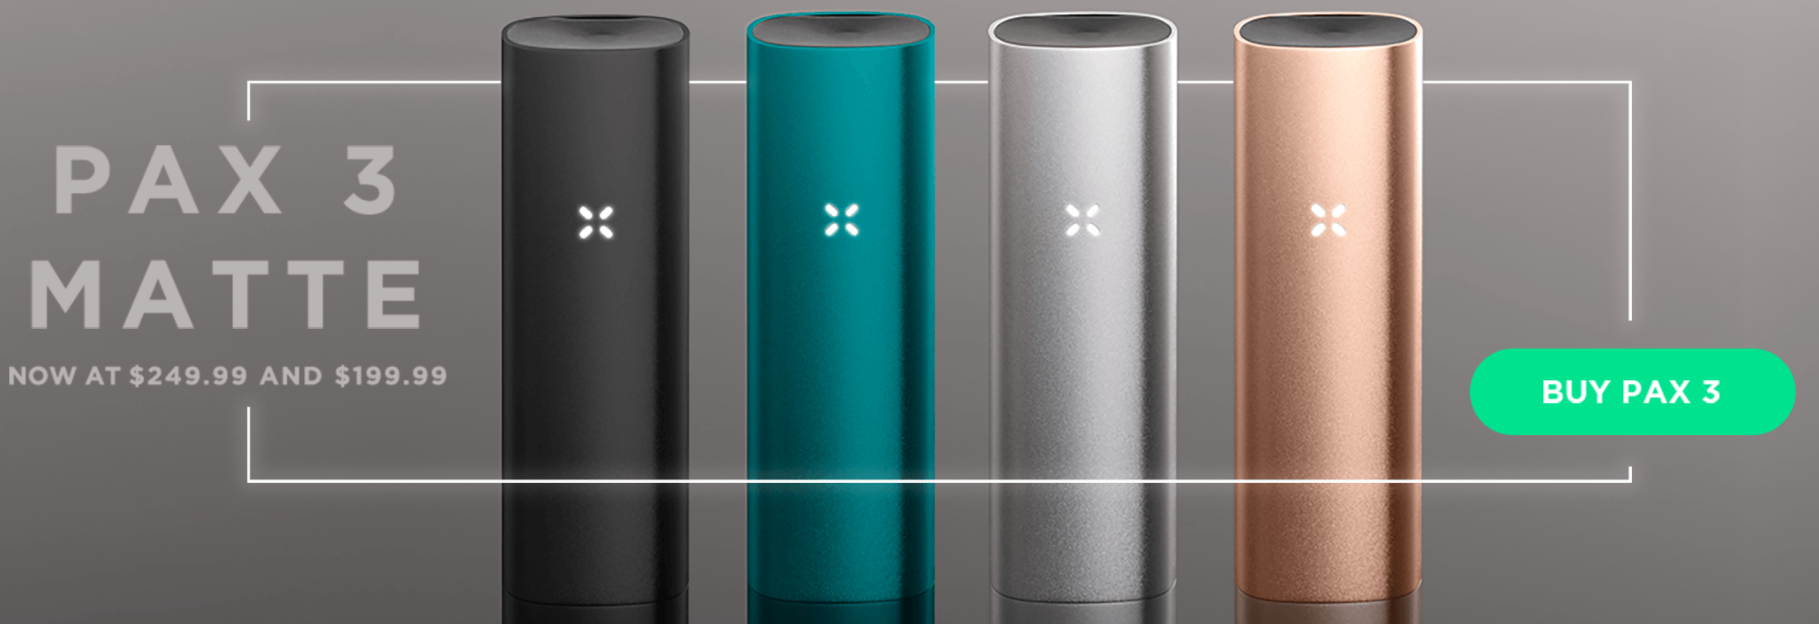 New Pax 3 Matte Colors are here!